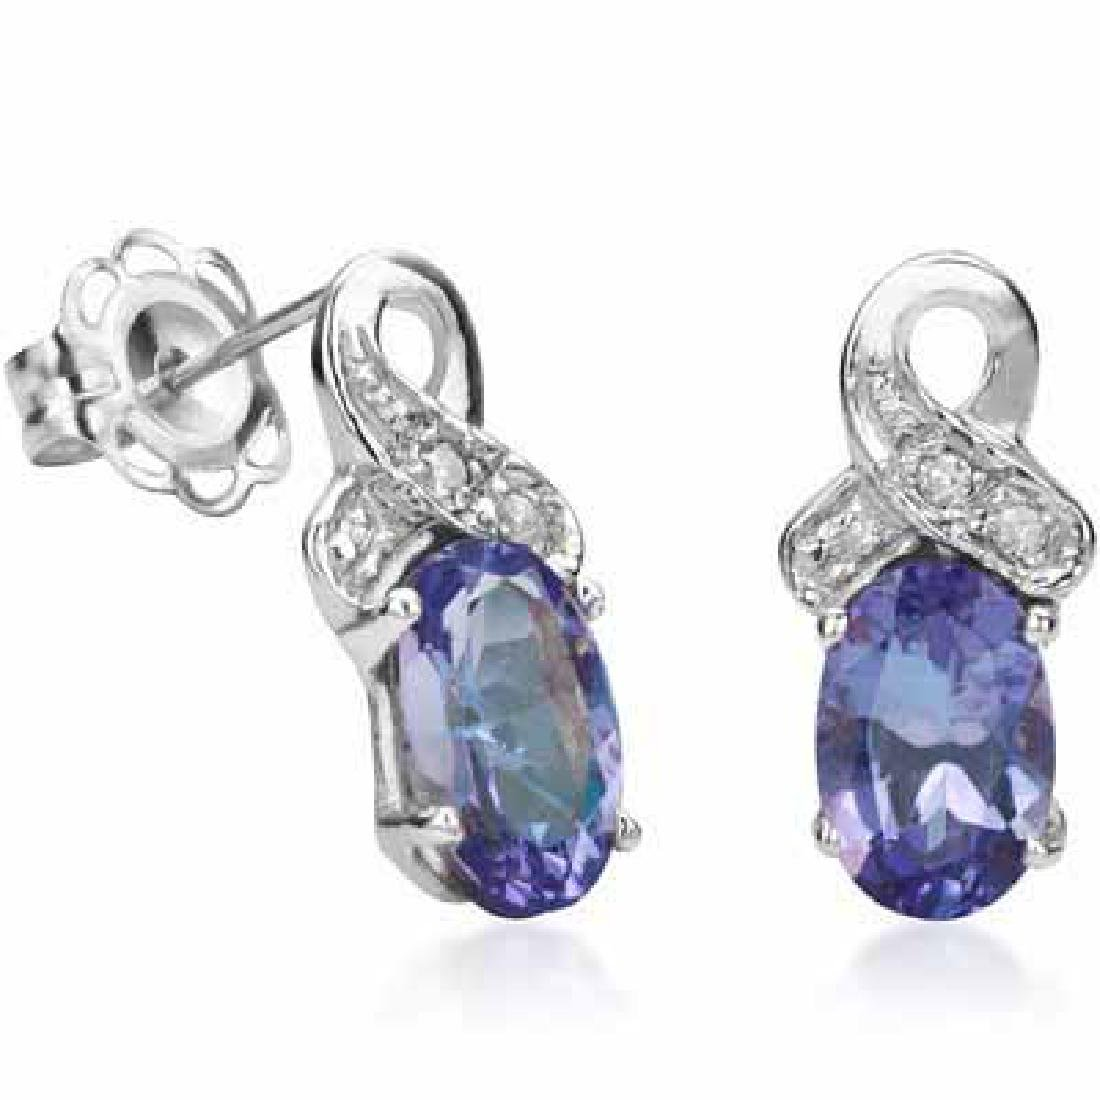 4/5 CARAT TANZANITE & DIAMOND 925 STERLING SILVER EARRI